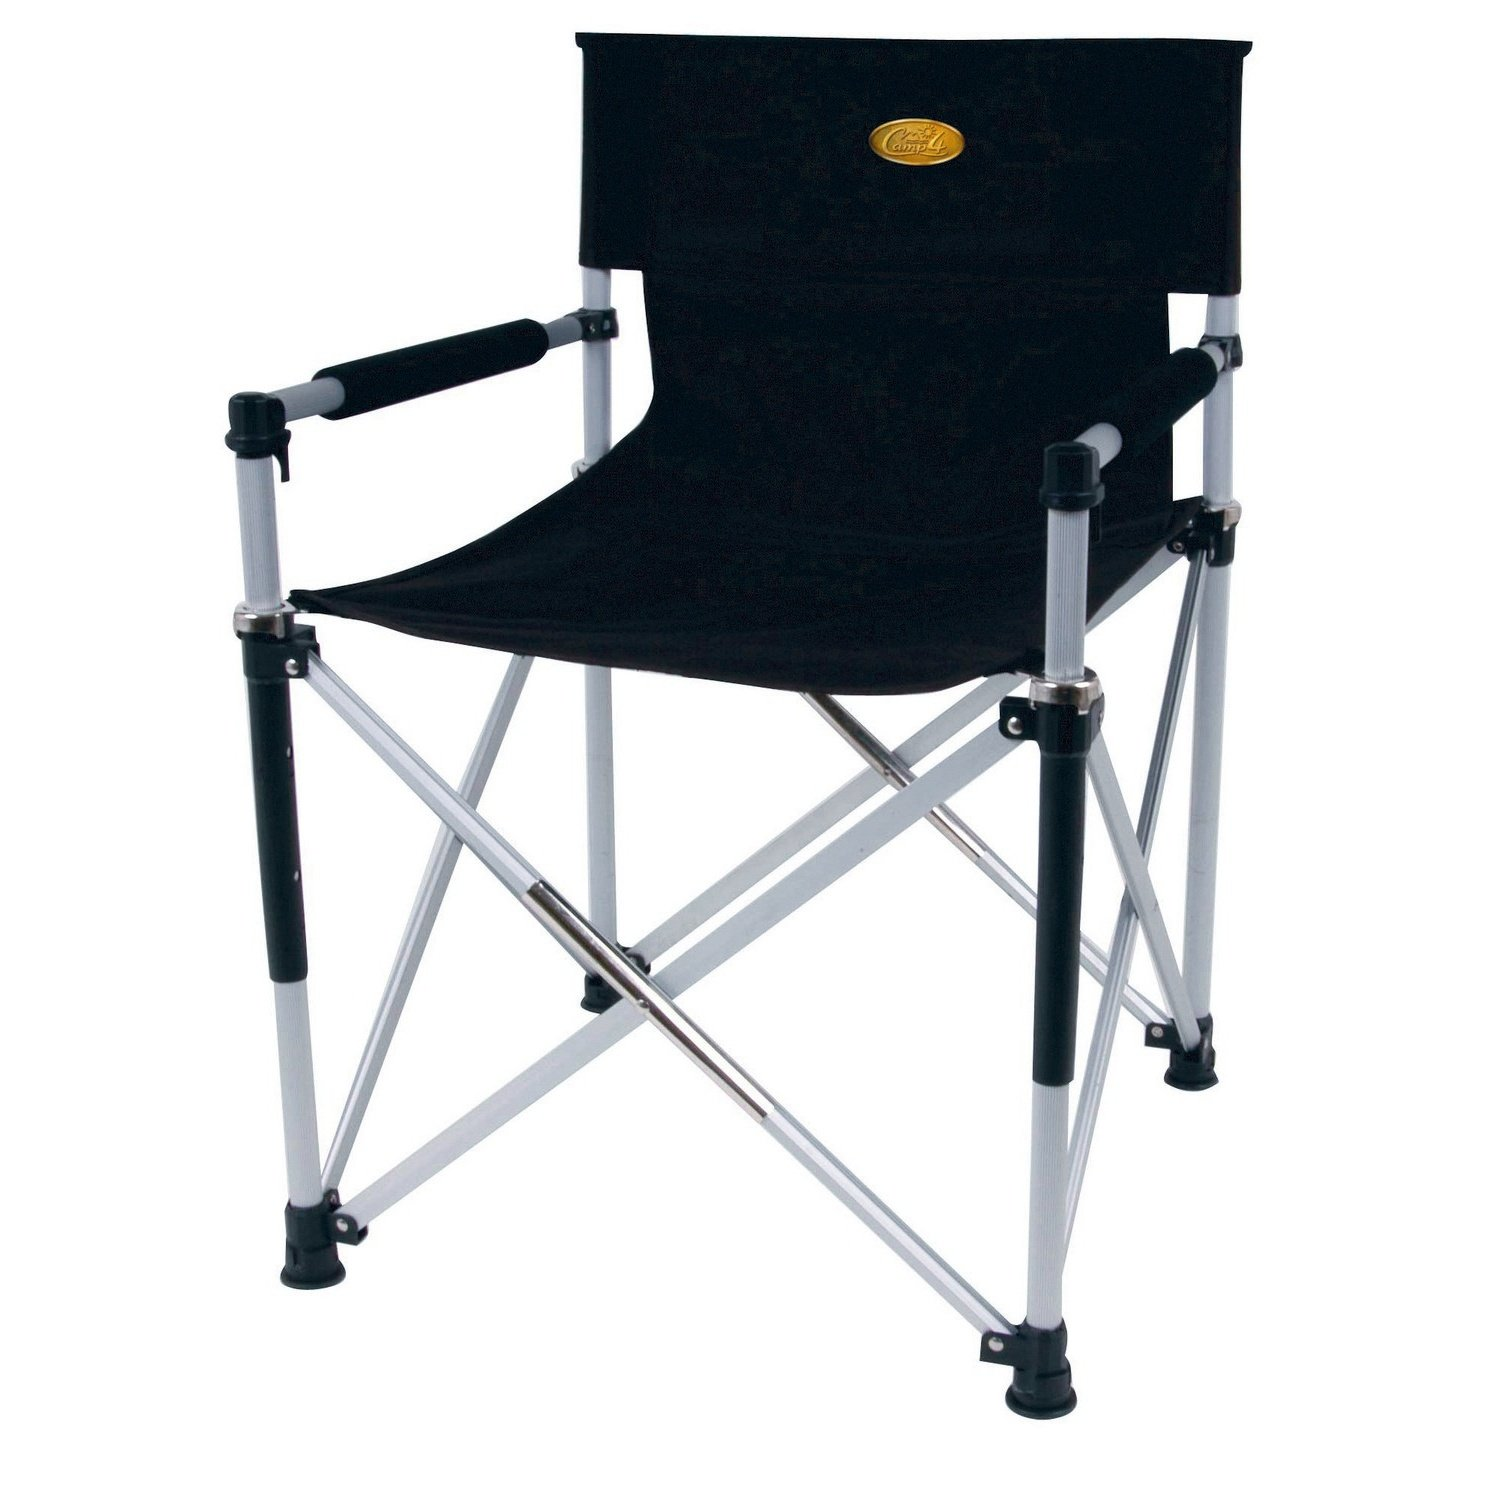 Camp 4 Toscana Luxus Directors Folding Camping Chair UTMD619_1